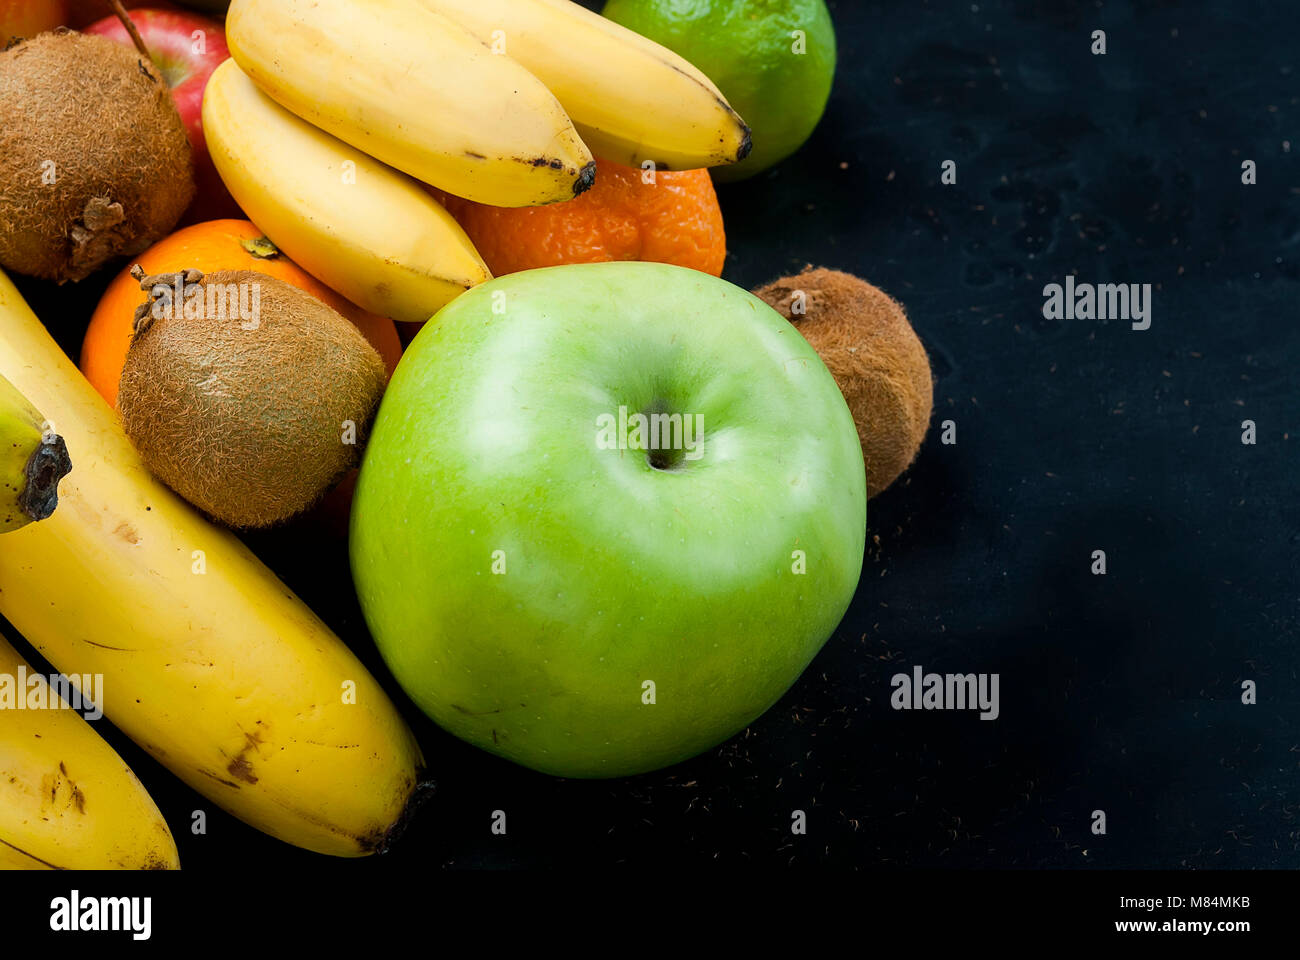 Variety of fresh fruits on dark background from slices of kiwi, bananas, aplle and orange ,copy space - Stock Image